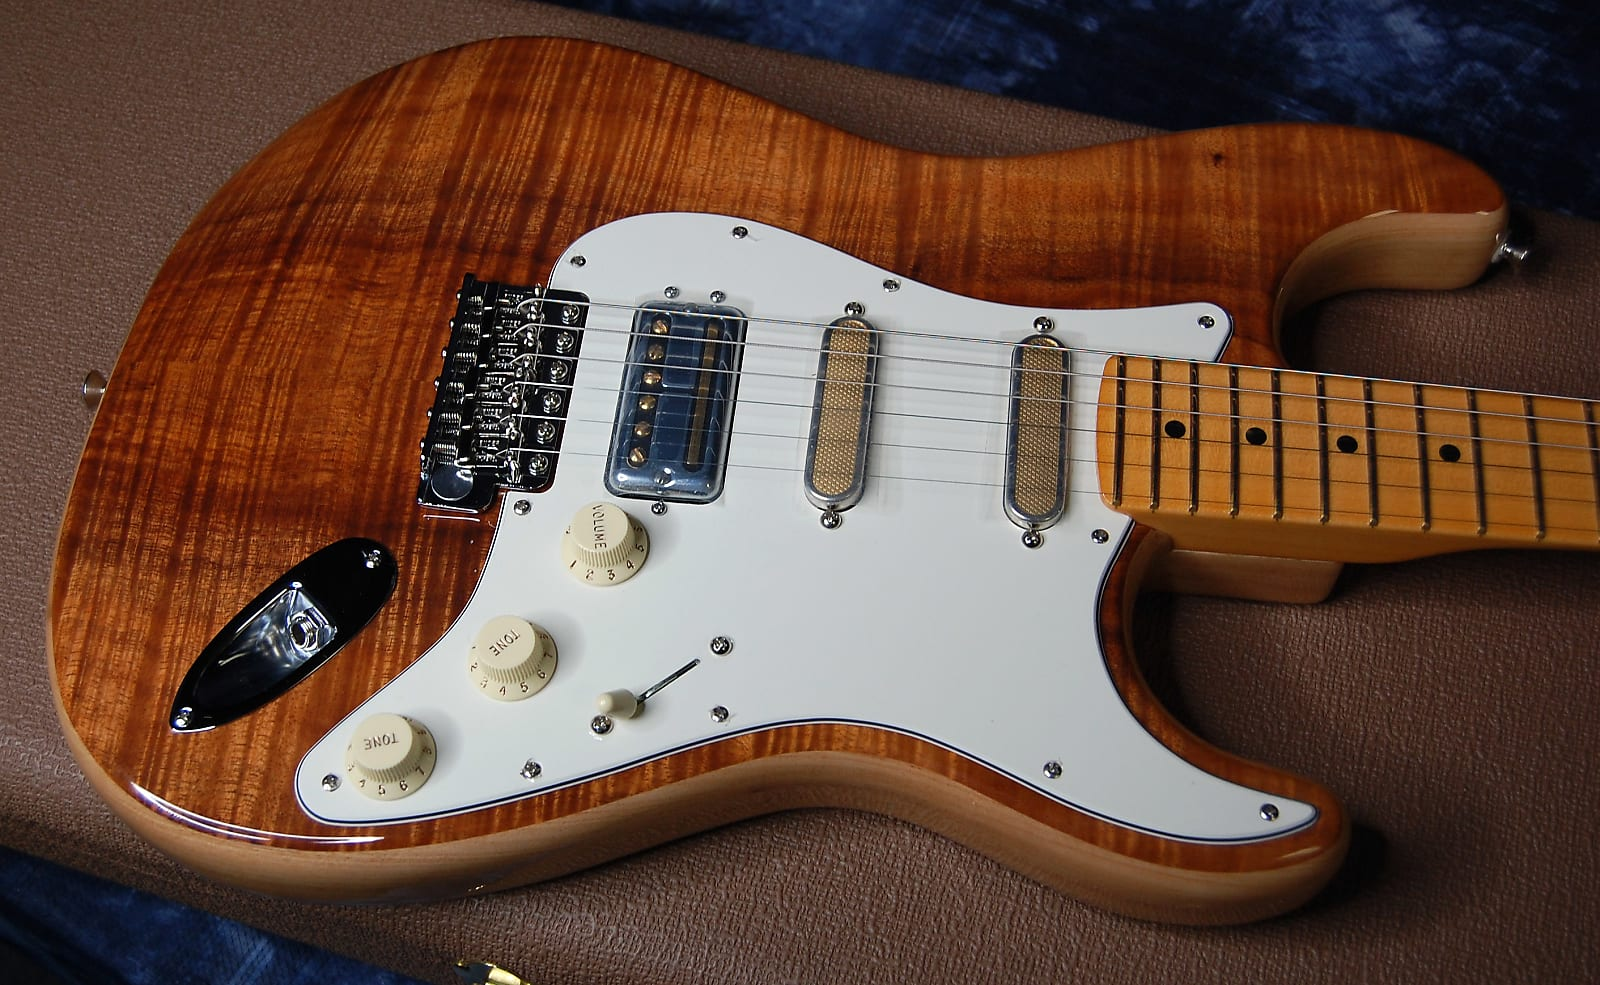 MINTY! Fender Rarities USA Flame Koa Top Stratocaster - Authorized Dealer - SAVE BIG!